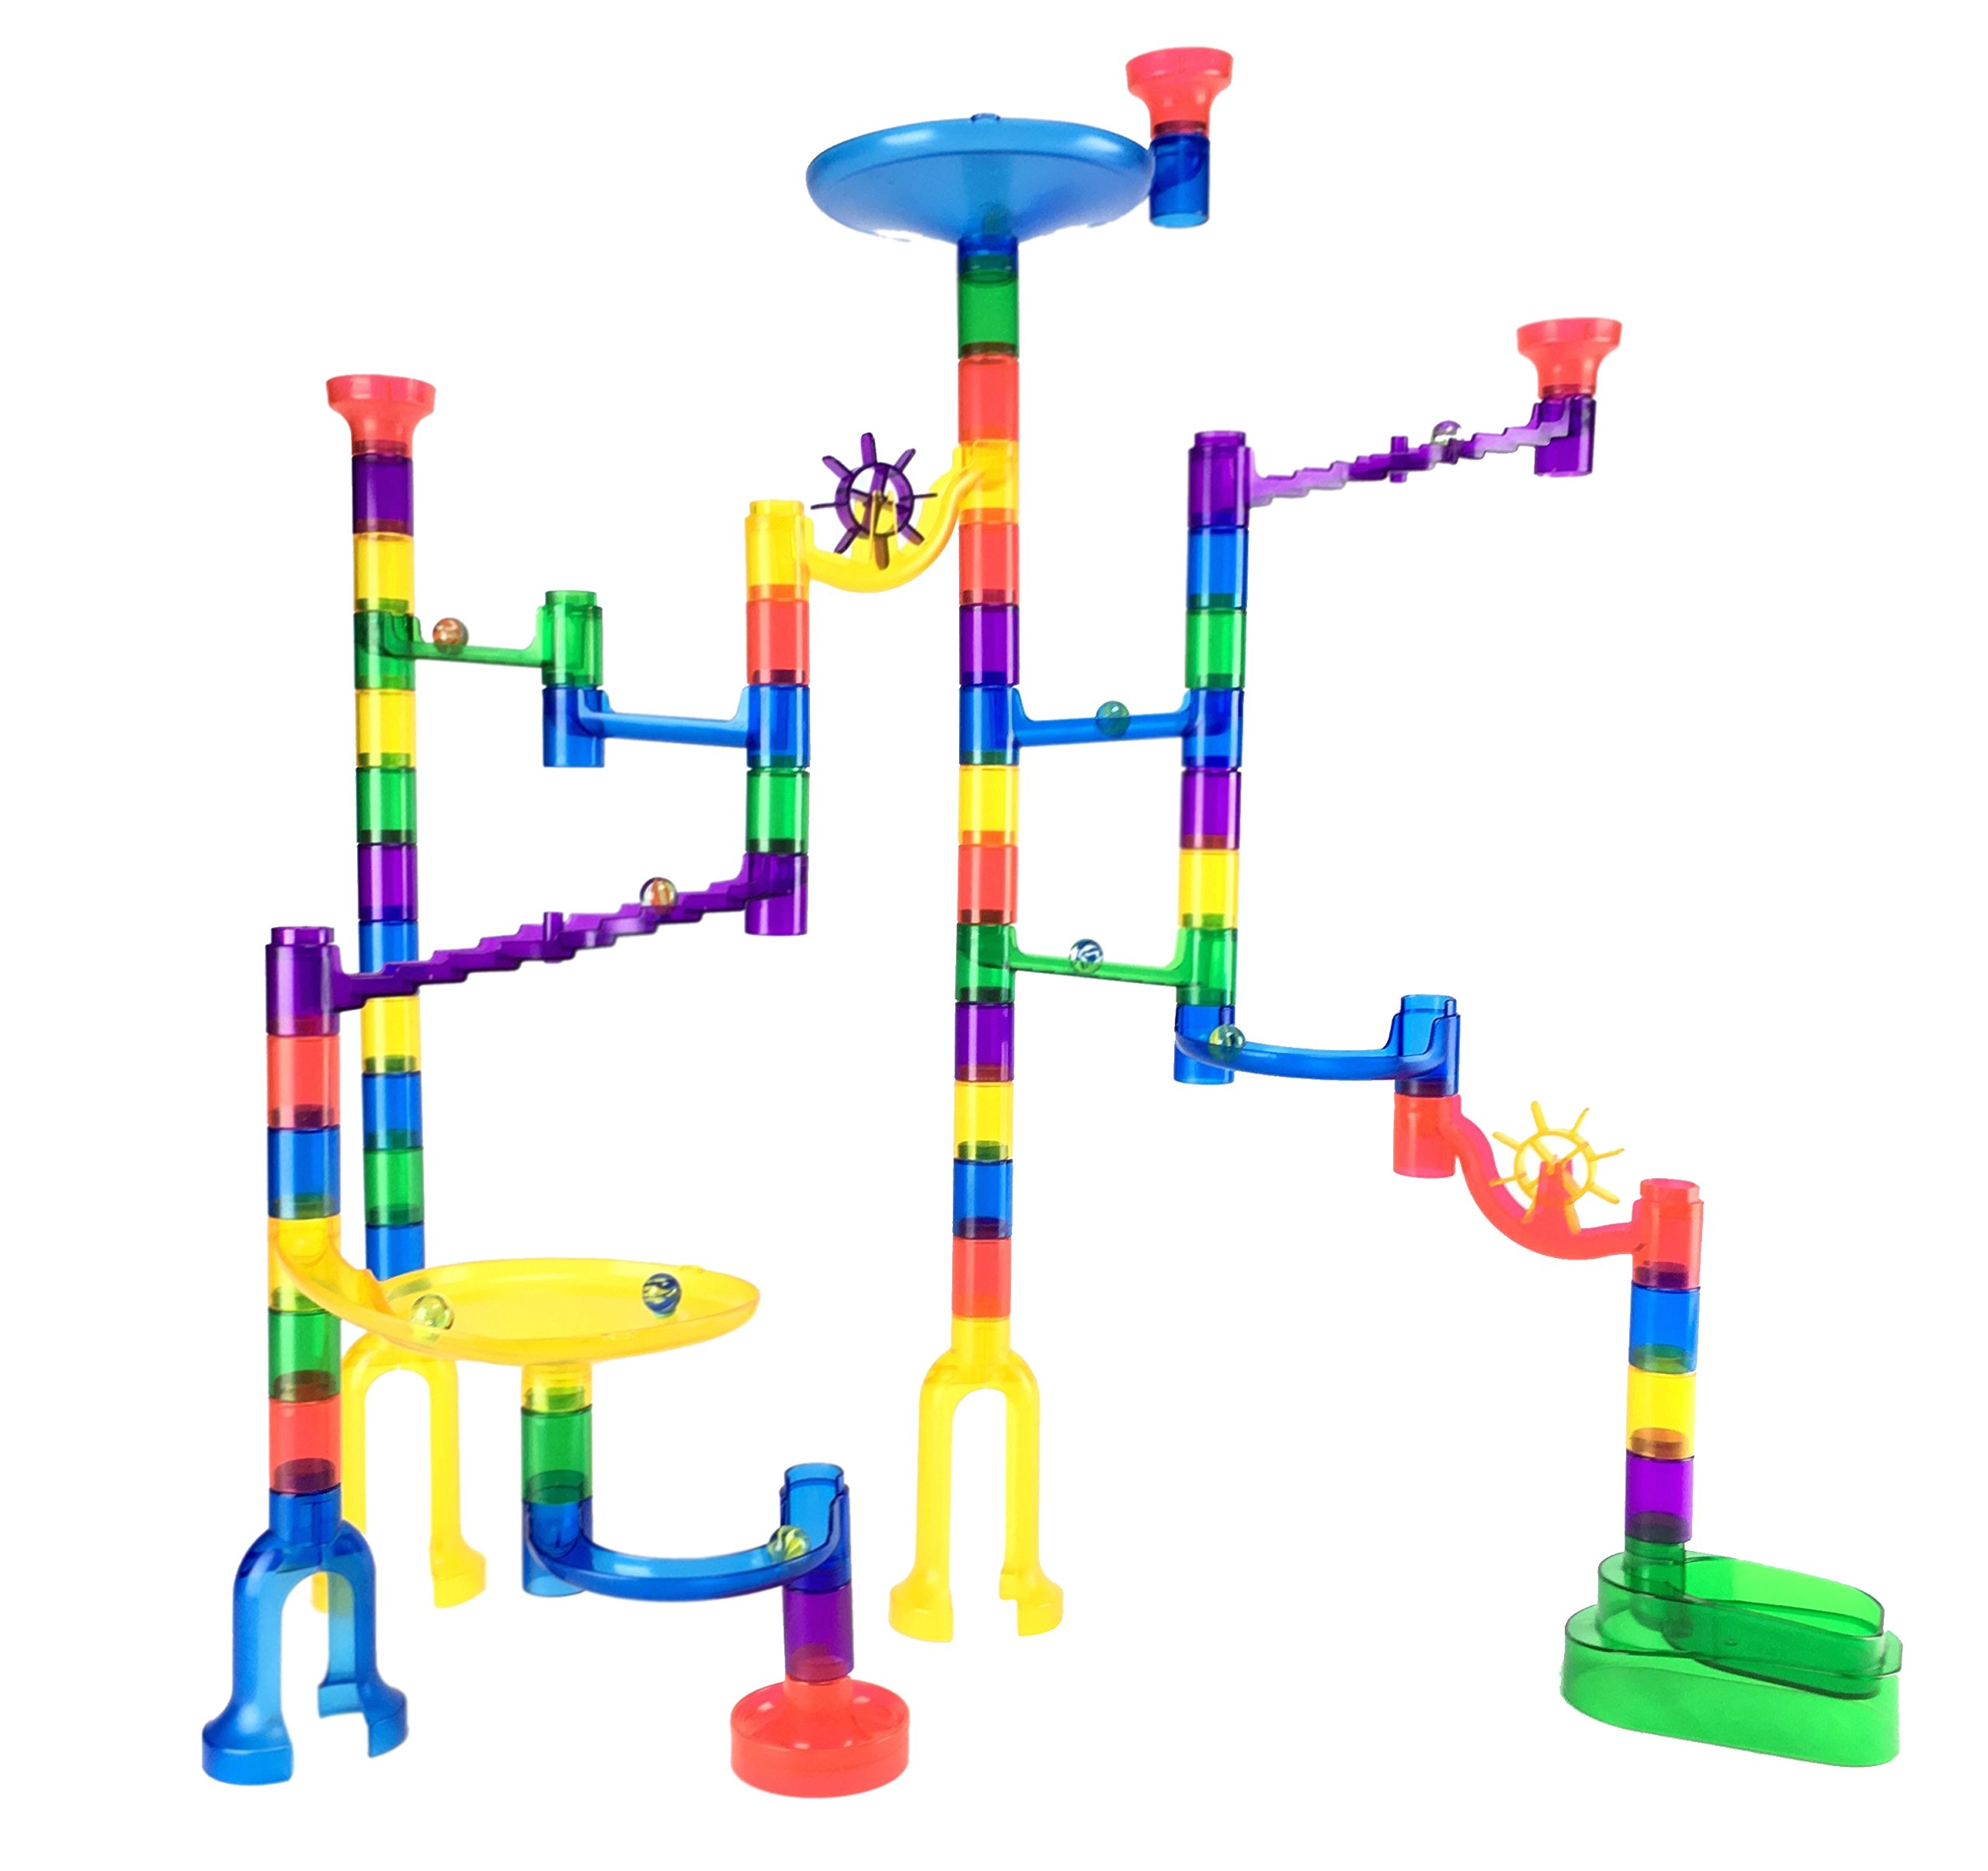 Marble Genius Marble Run Starter Set - 70 Complete Pieces + Free Instruction App (60 Translucent Marbulous Pieces + 10 Glass Marbles)